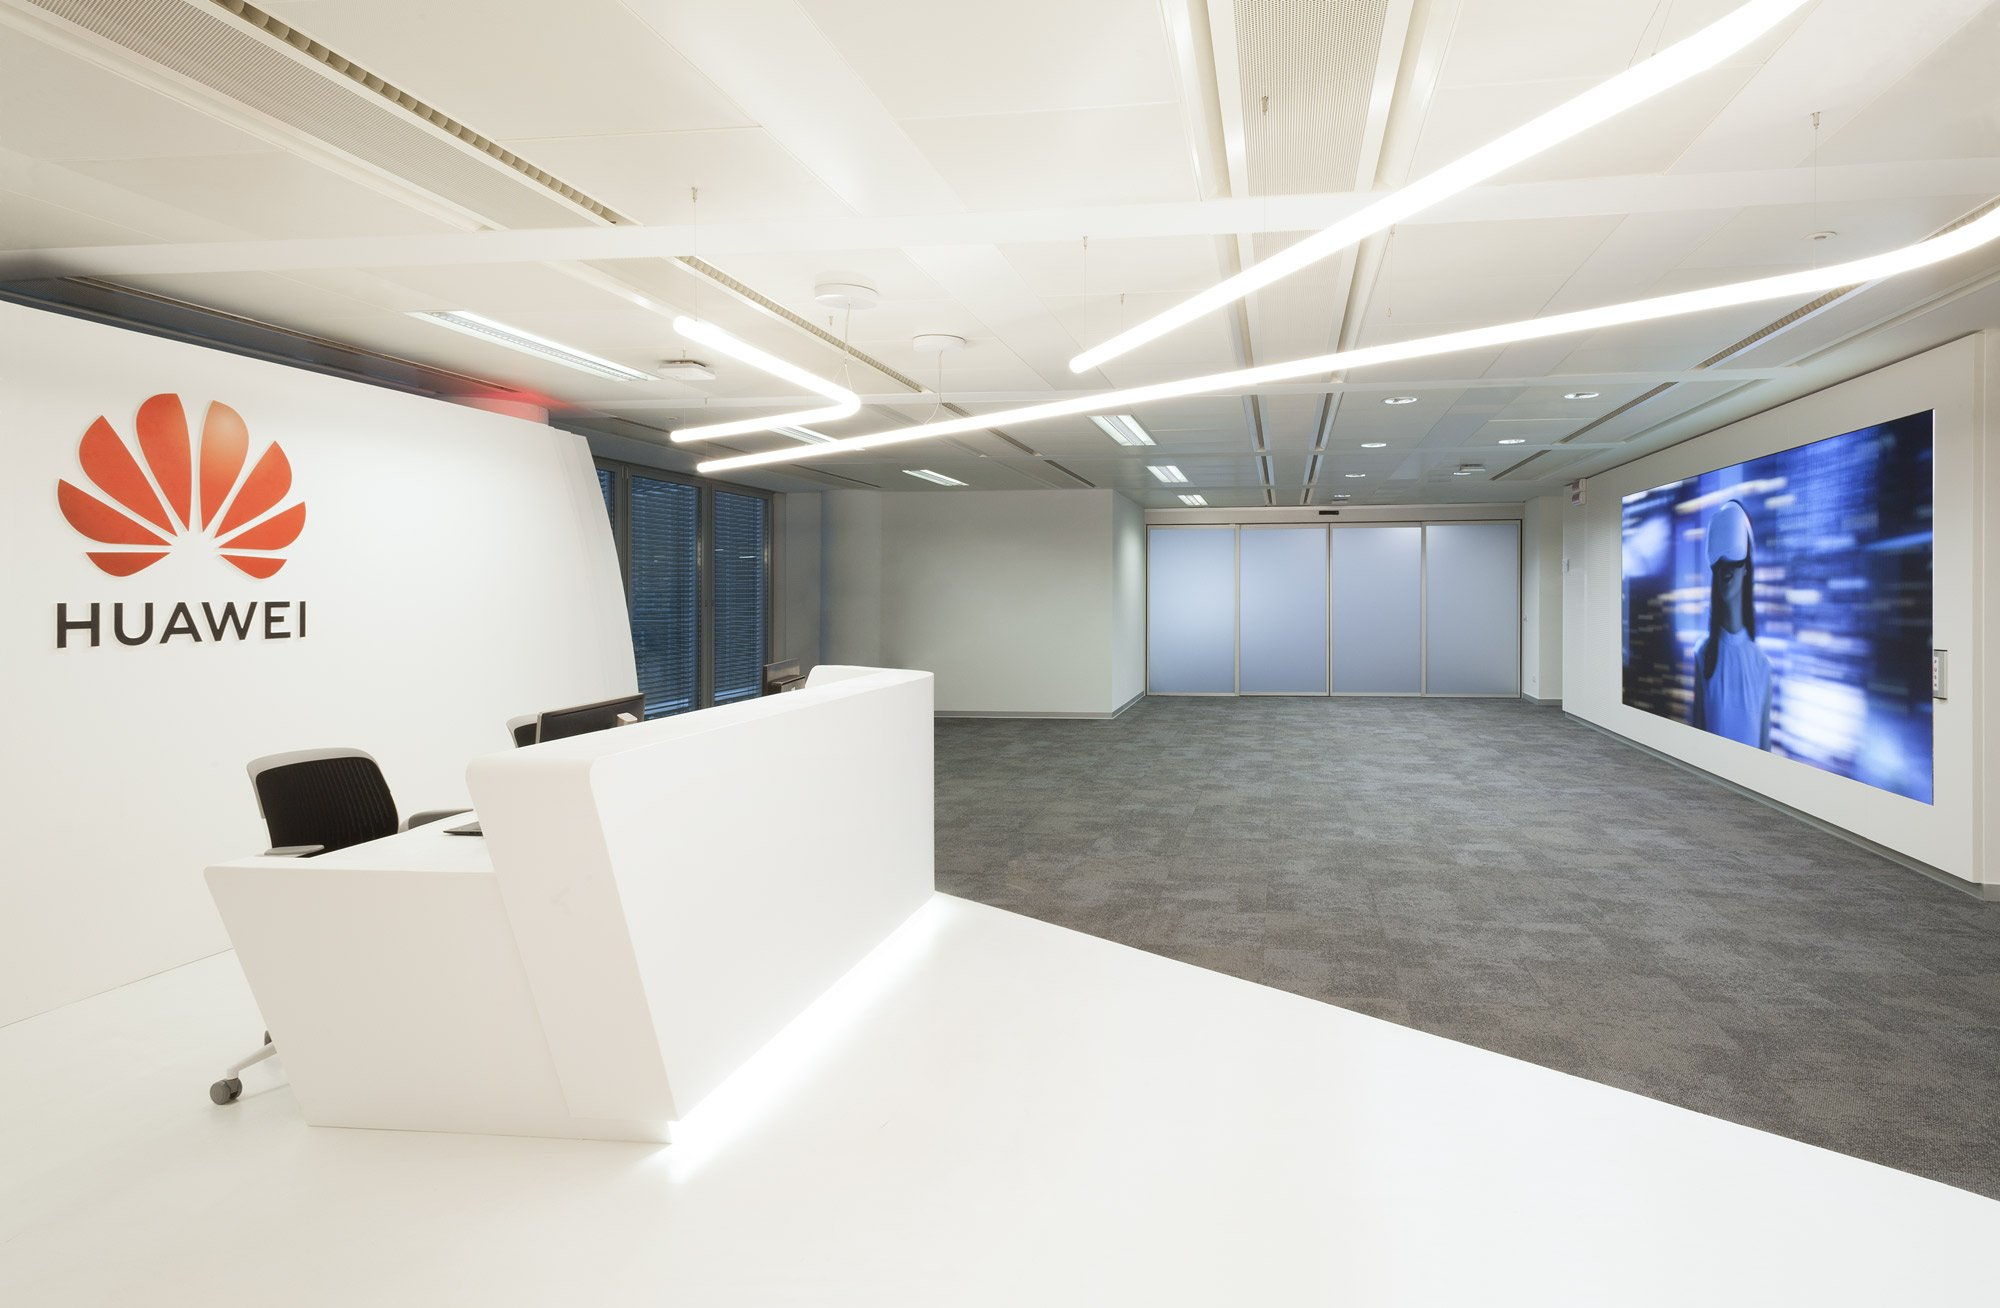 Progetto CMR designs the new Huawei HQ